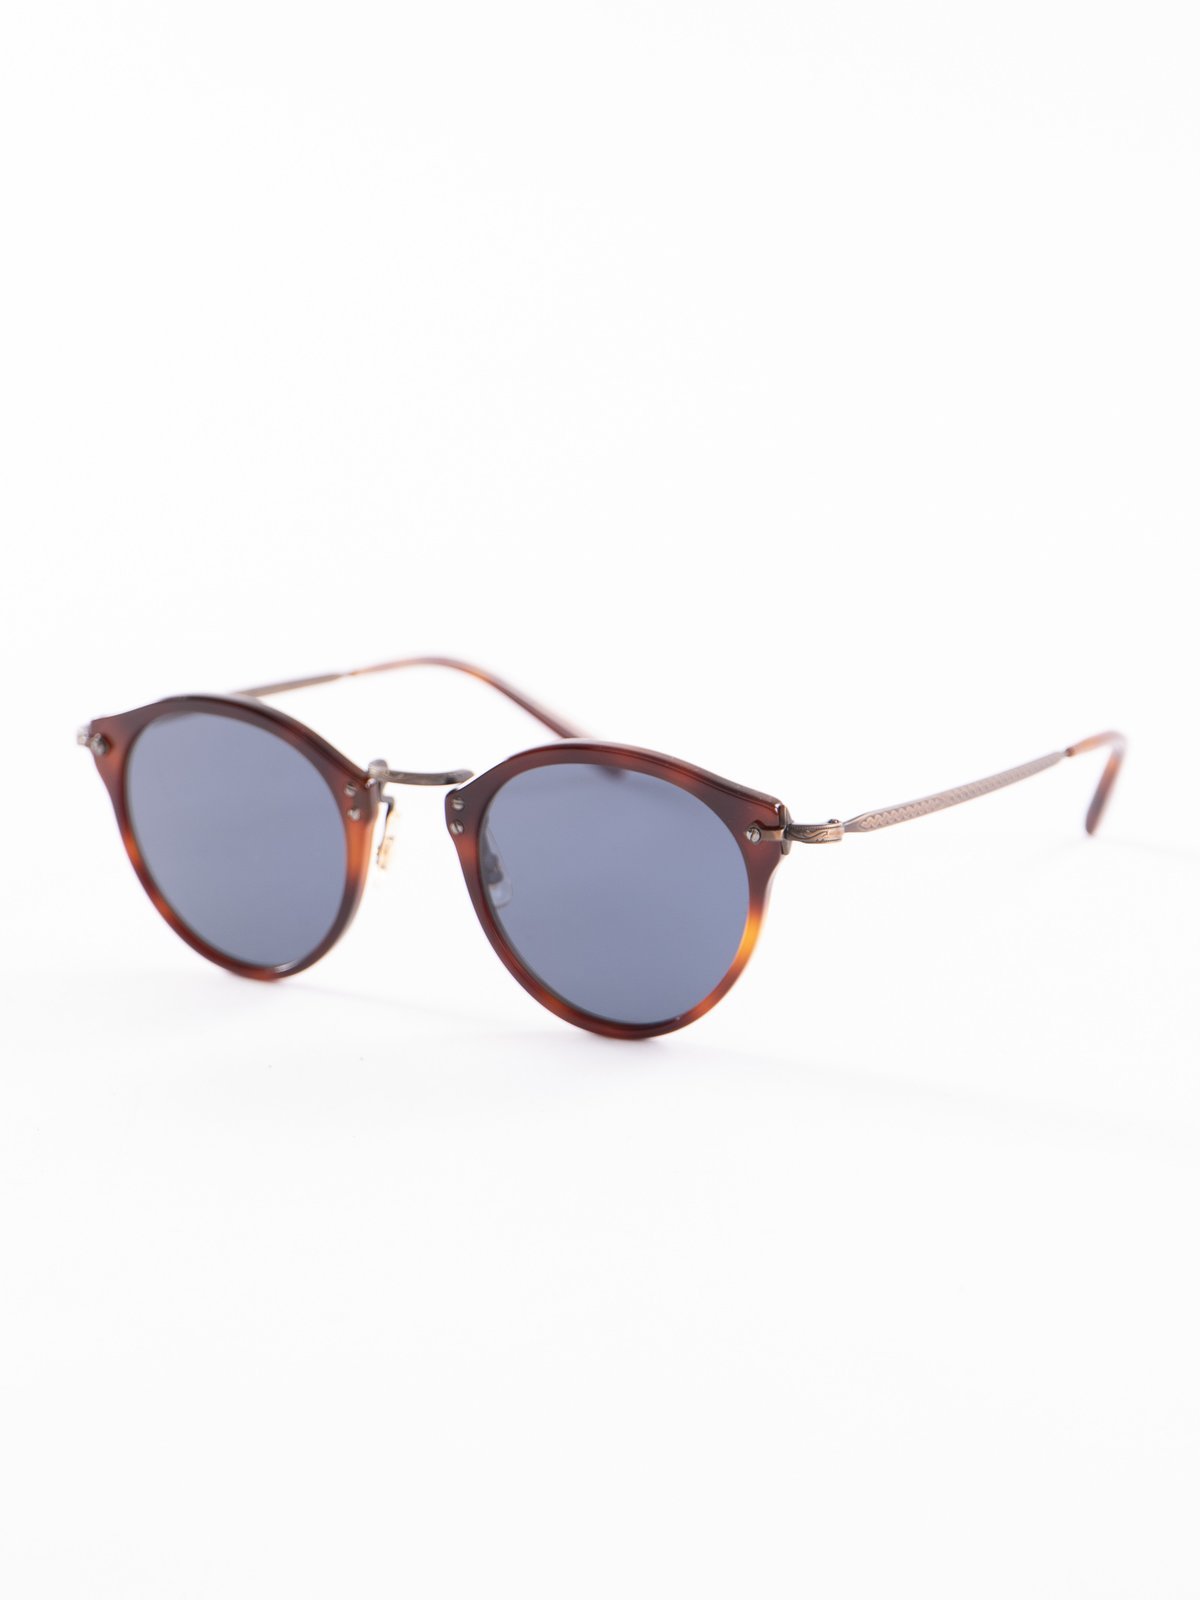 Dark Mahogany–Bronze–Blue OP–505 Sunglasses - Image 2